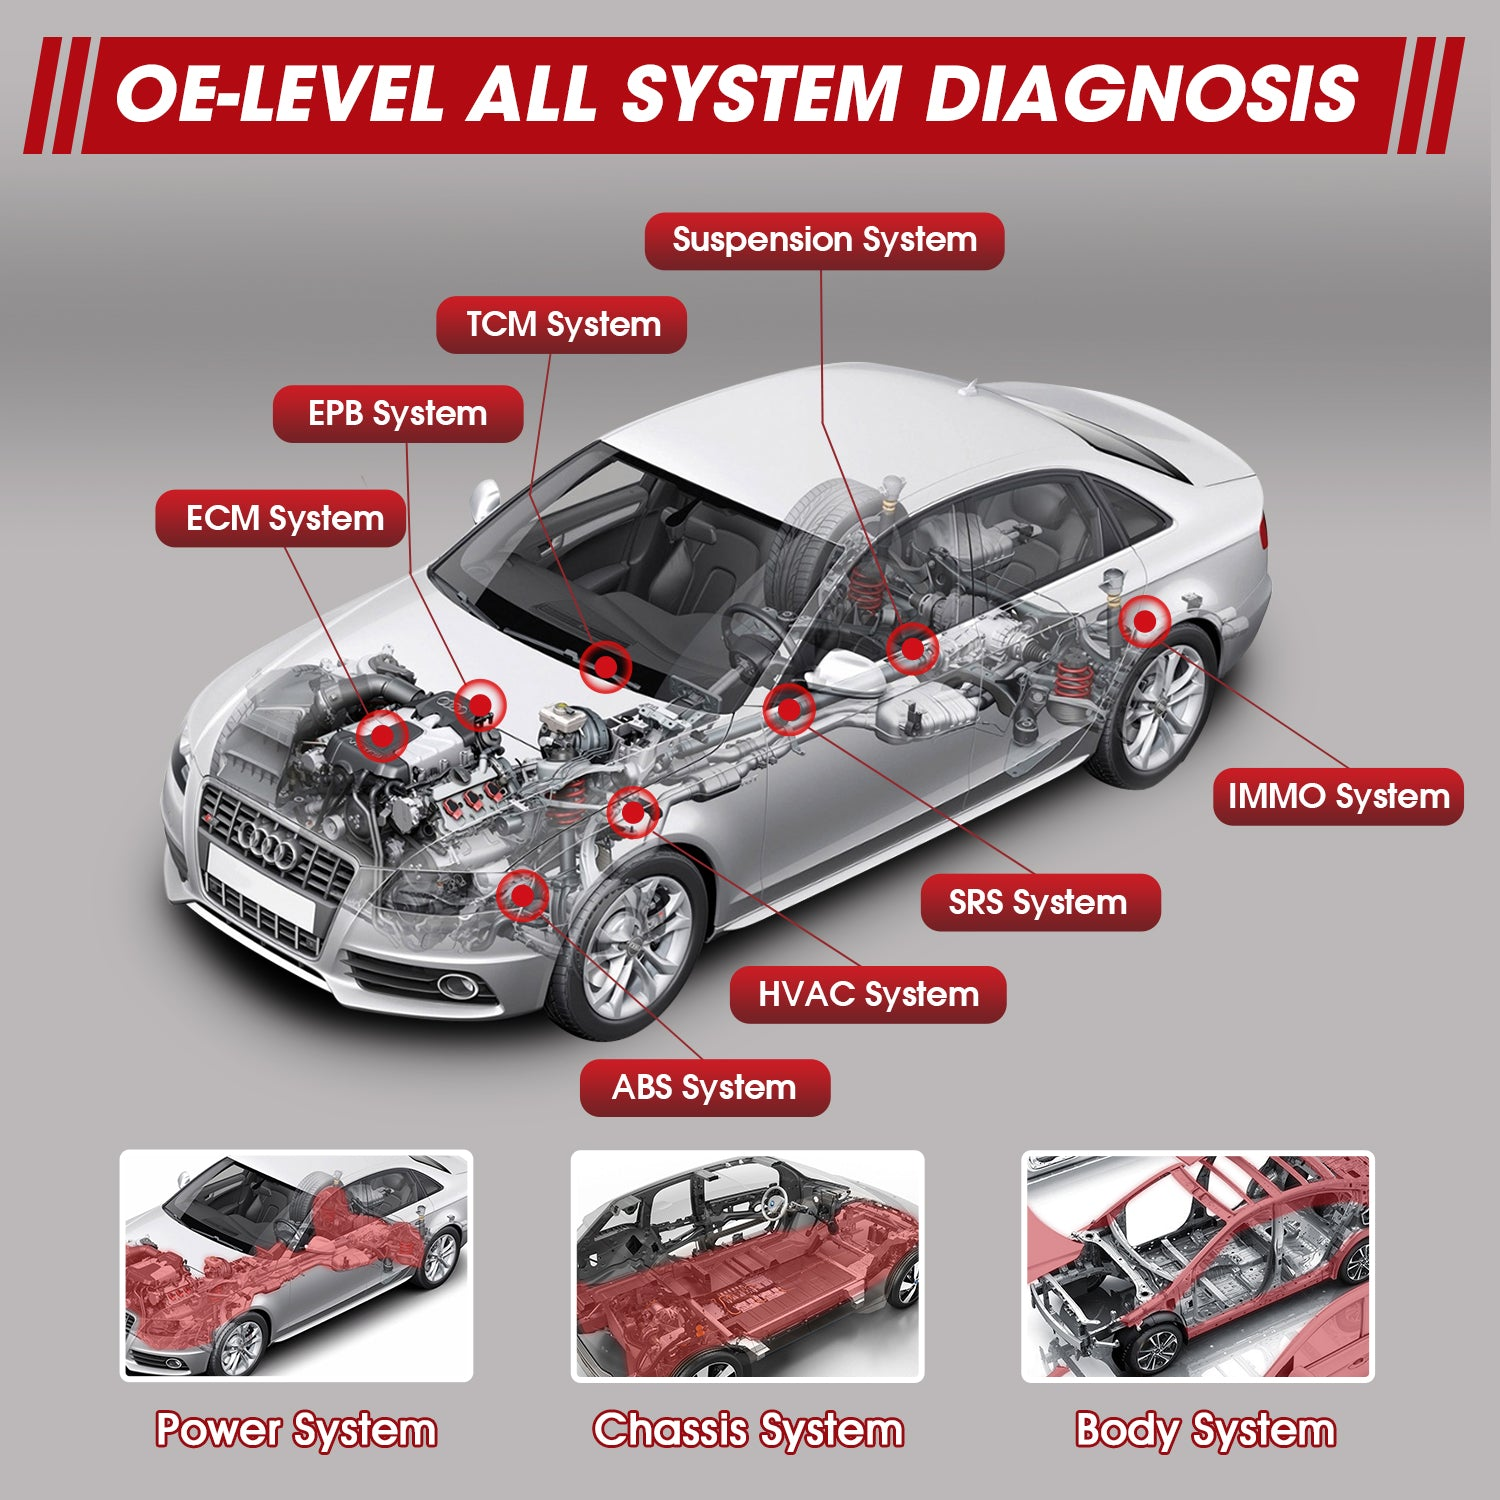 The IM608 Pro Automotive Diagnostics product provides a complete check of your vehicle's system